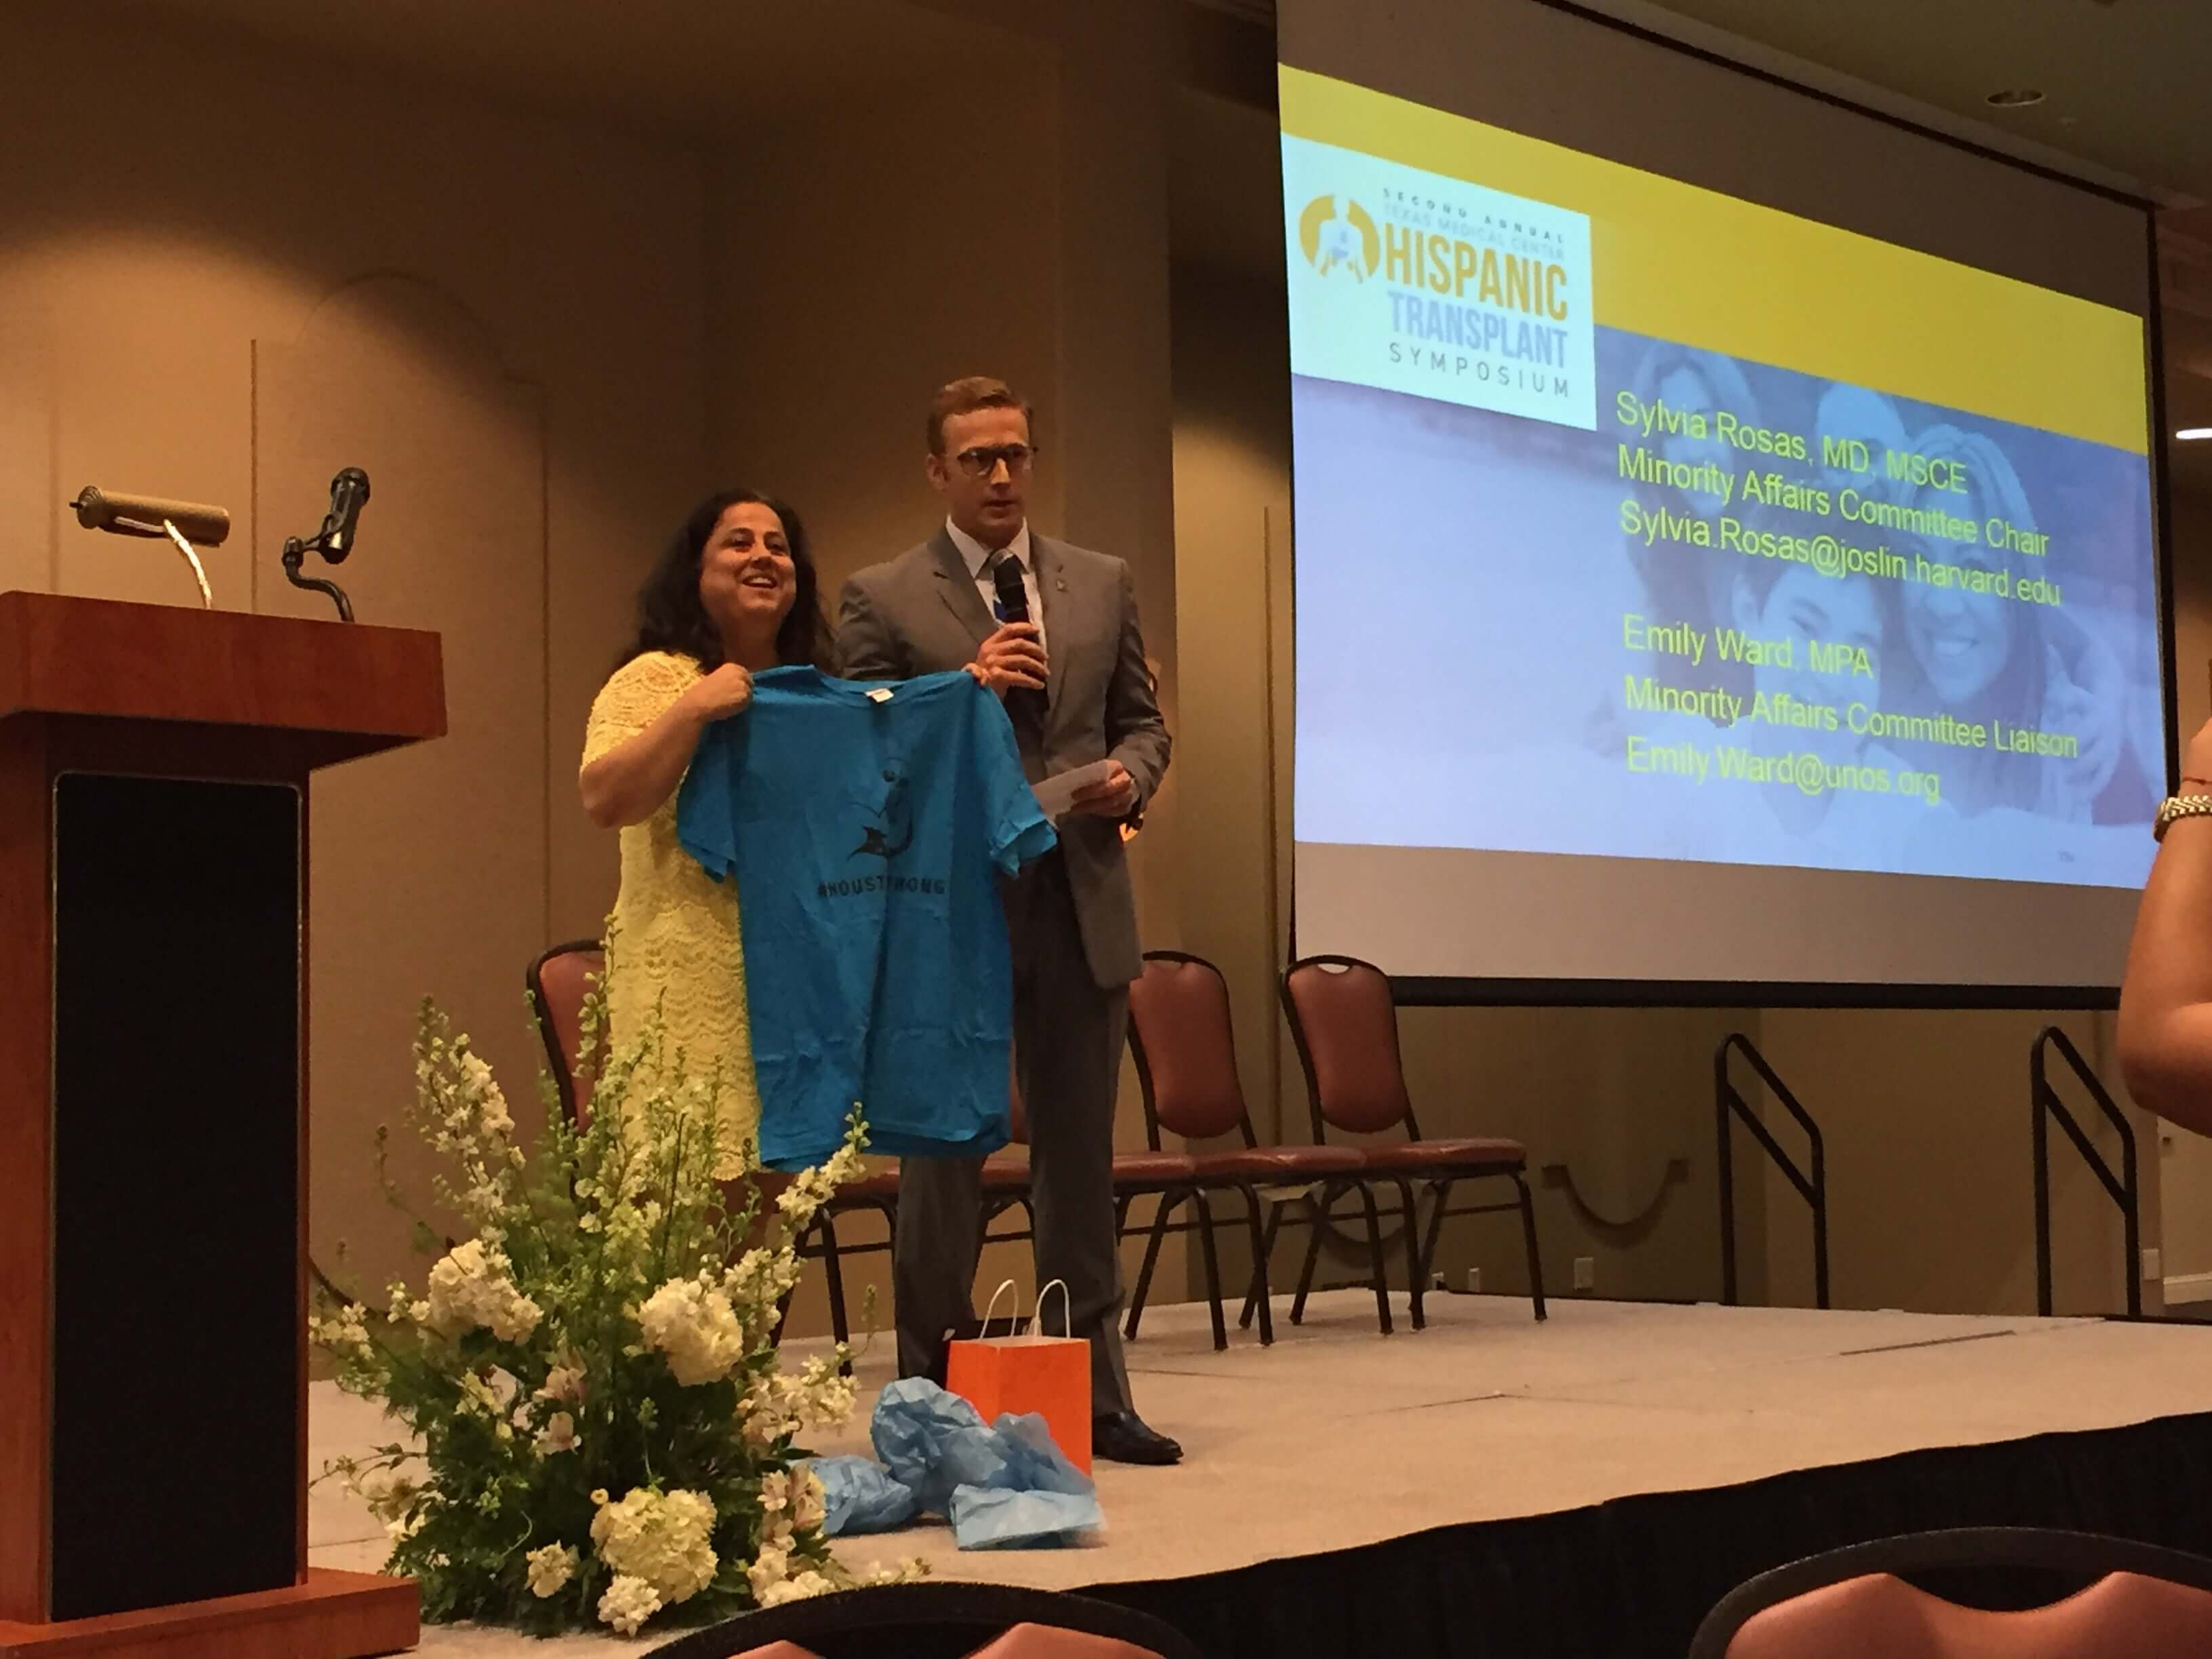 Dr. Mark Hobeika presents keynote speaker Dr. Sylvia Rosas with a Houston Strong t-shirt after her presentation.